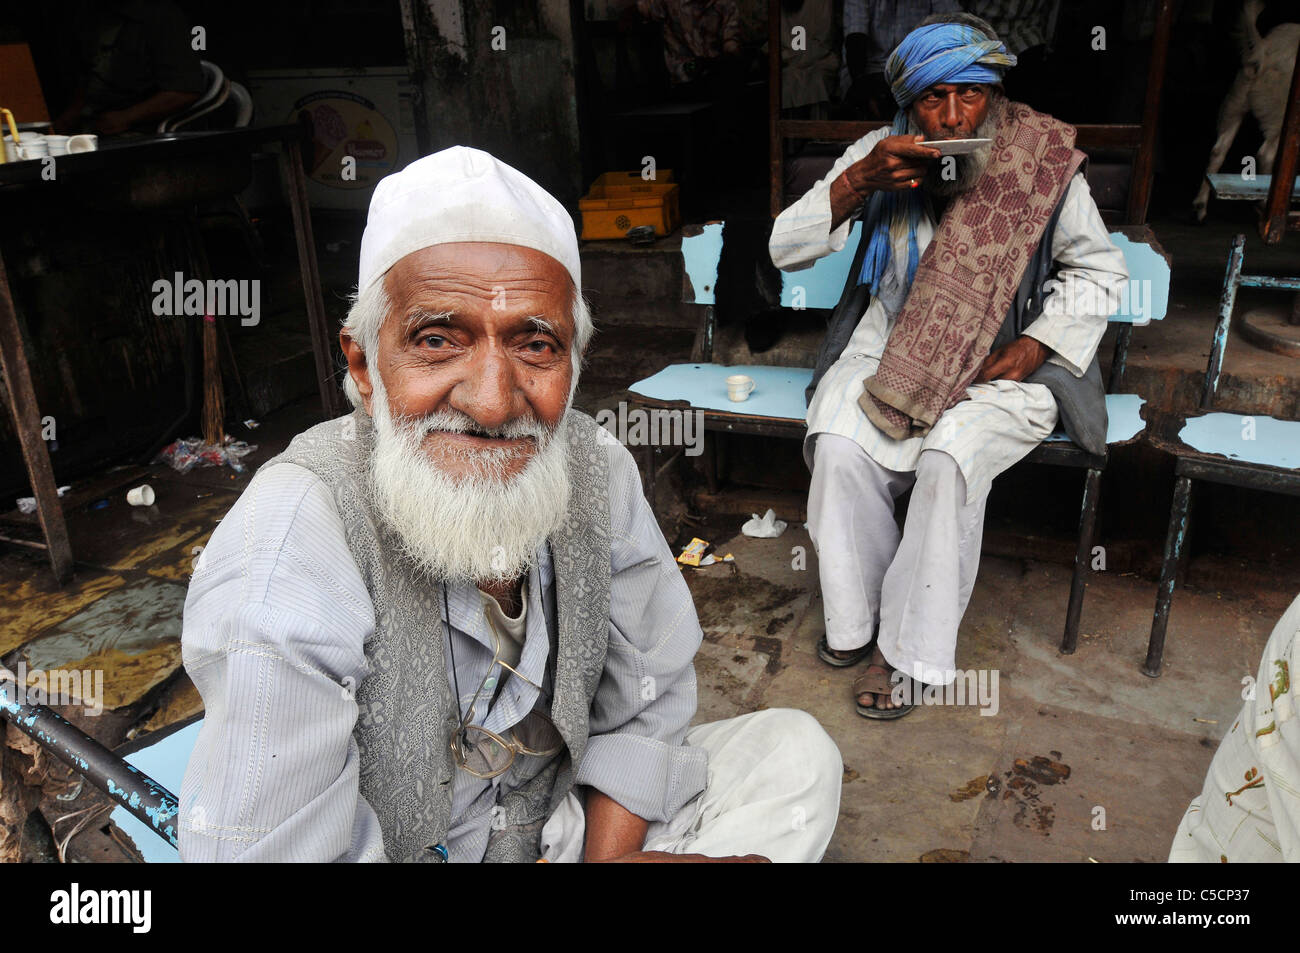 Street scene in Ahmedabad, India - Stock Image